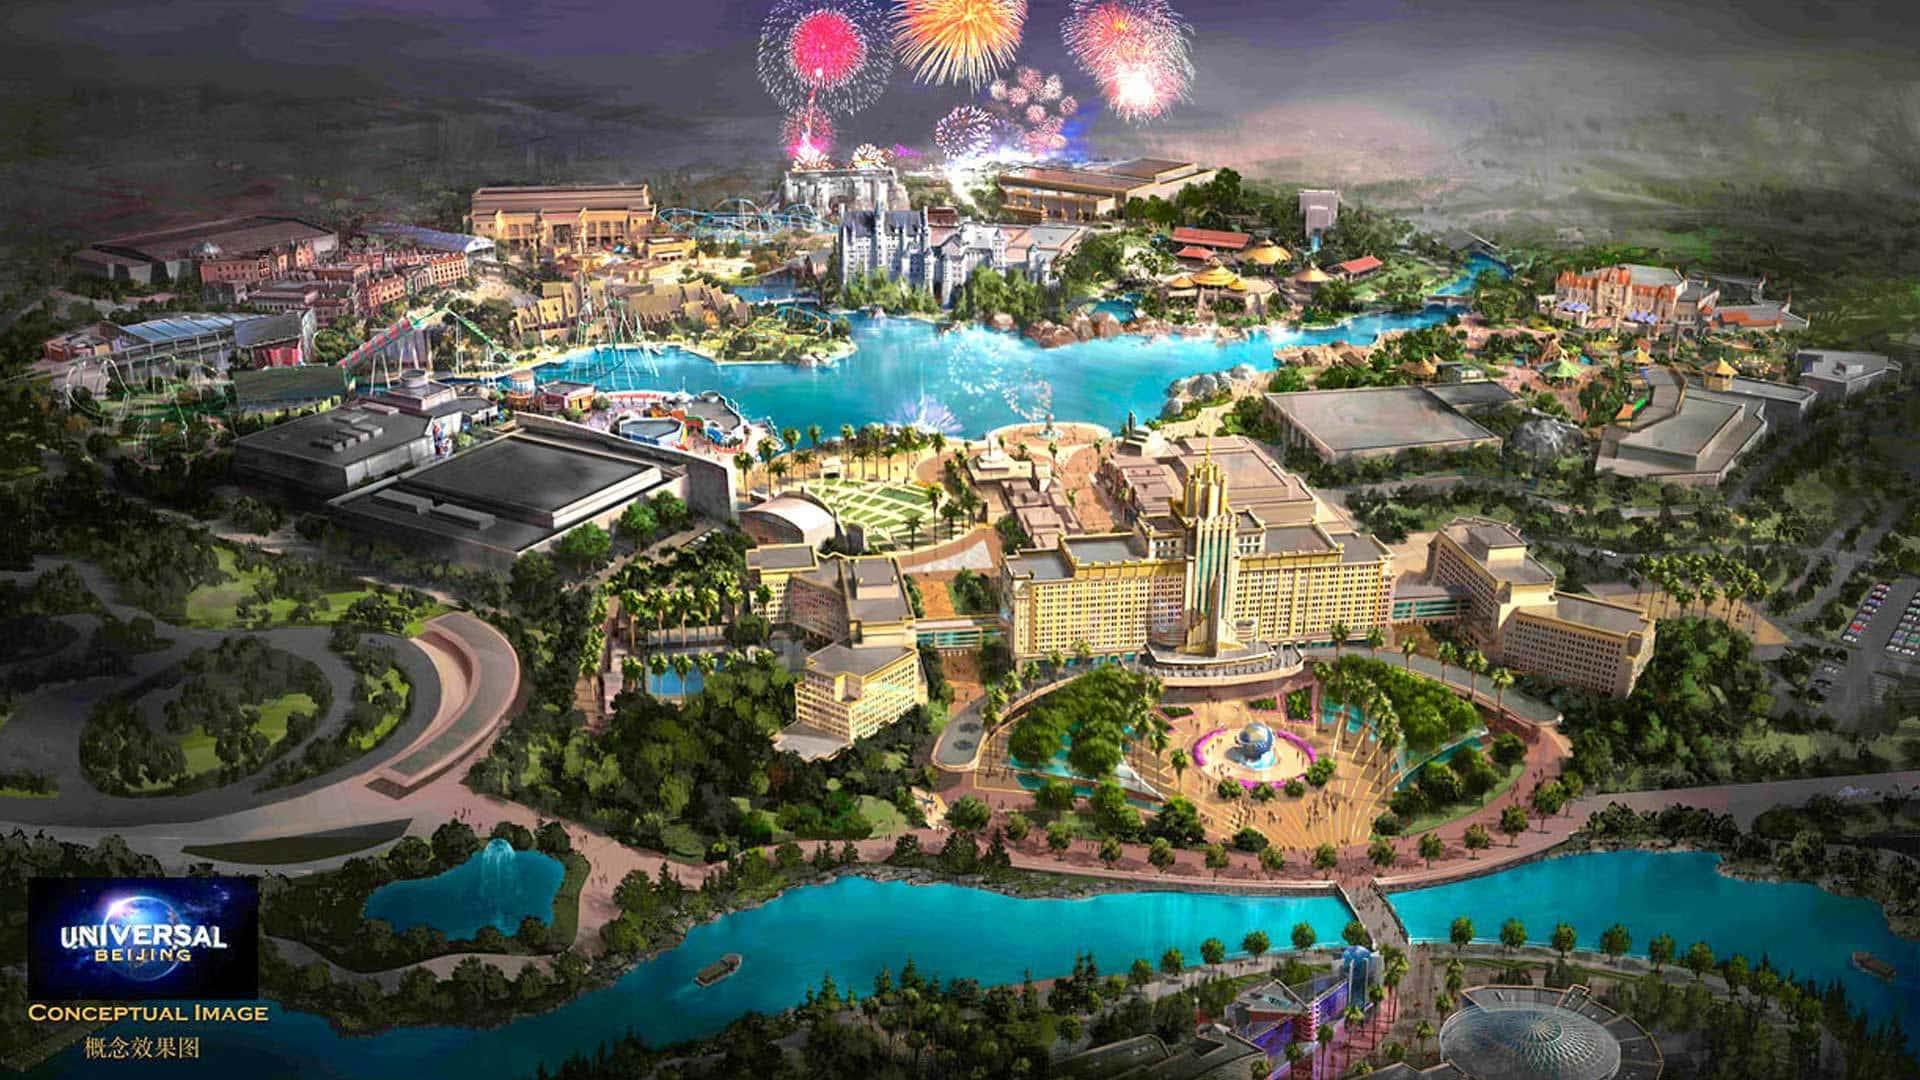 Universal now has the most expensive theme park in the world